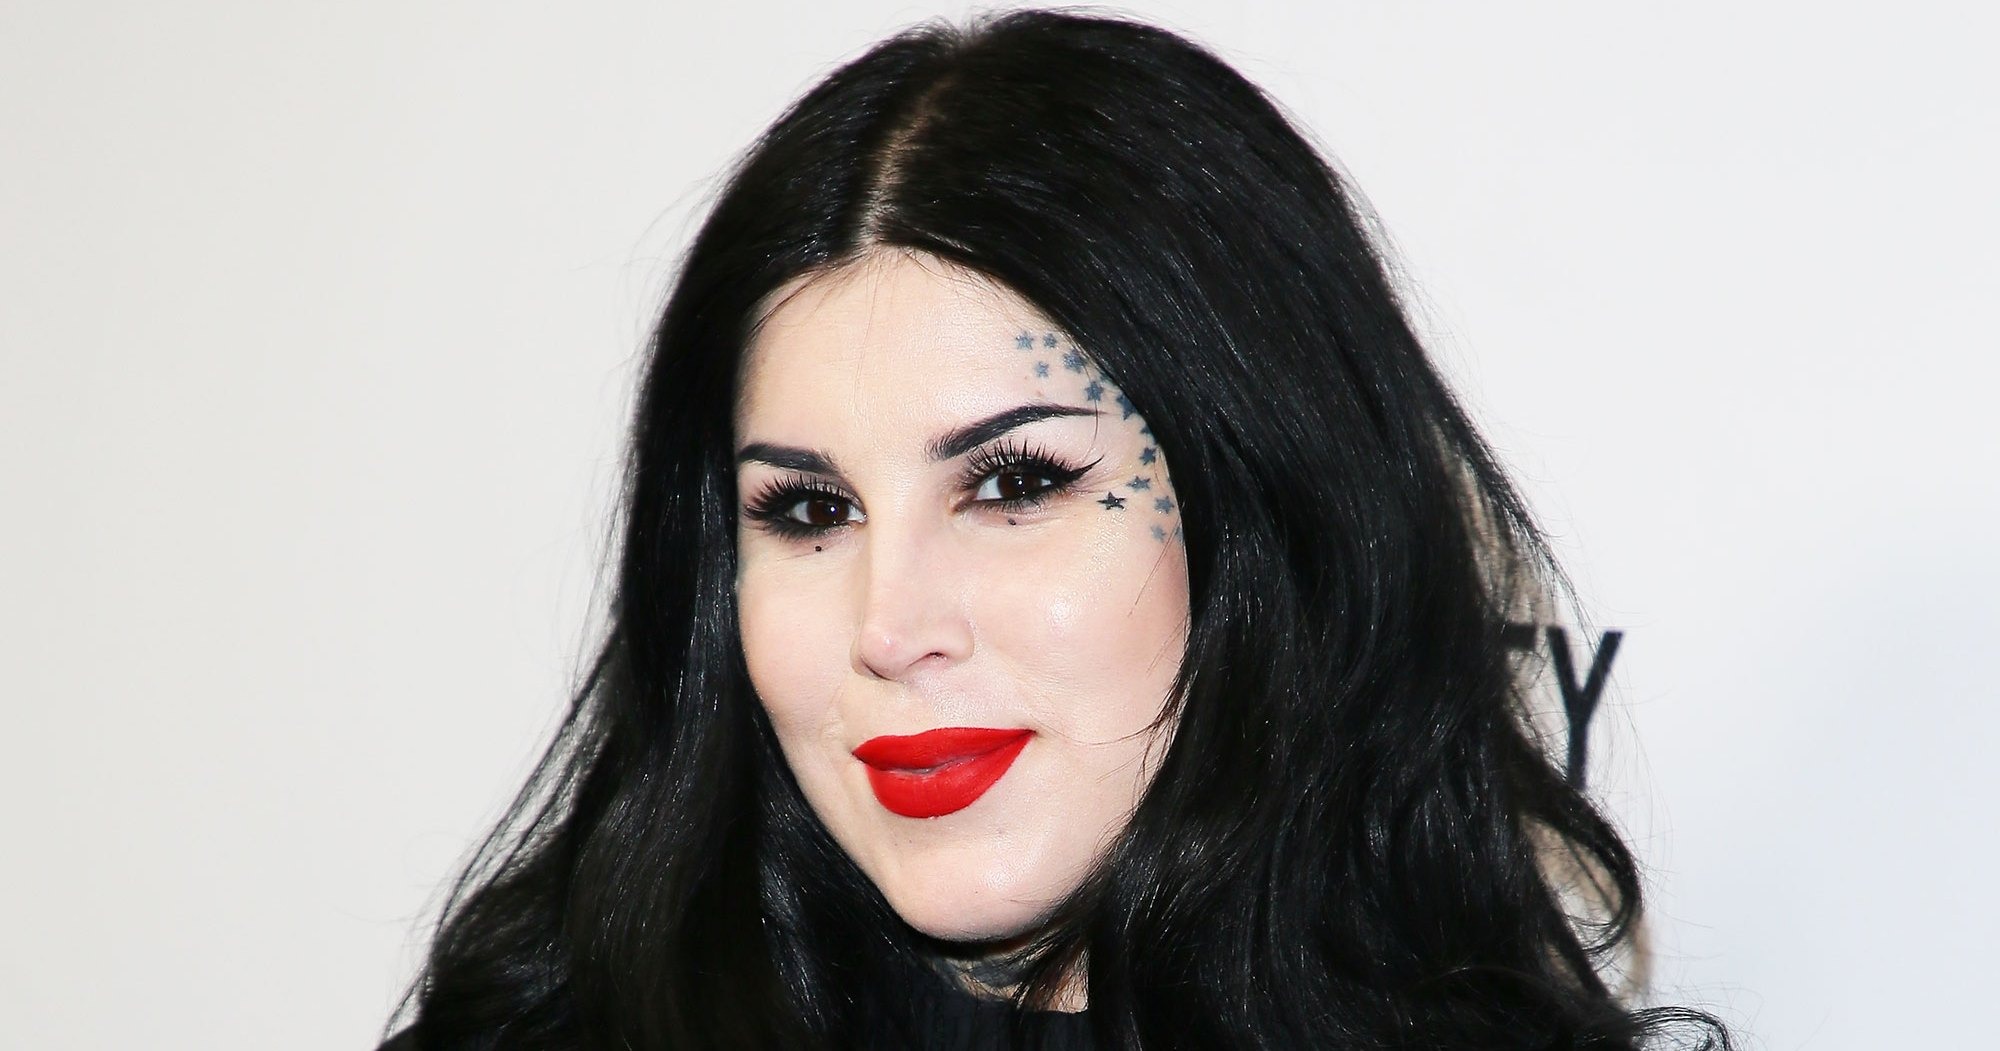 Kat Von D Breast-Feeds Son Leafar in Makeup-Free Video